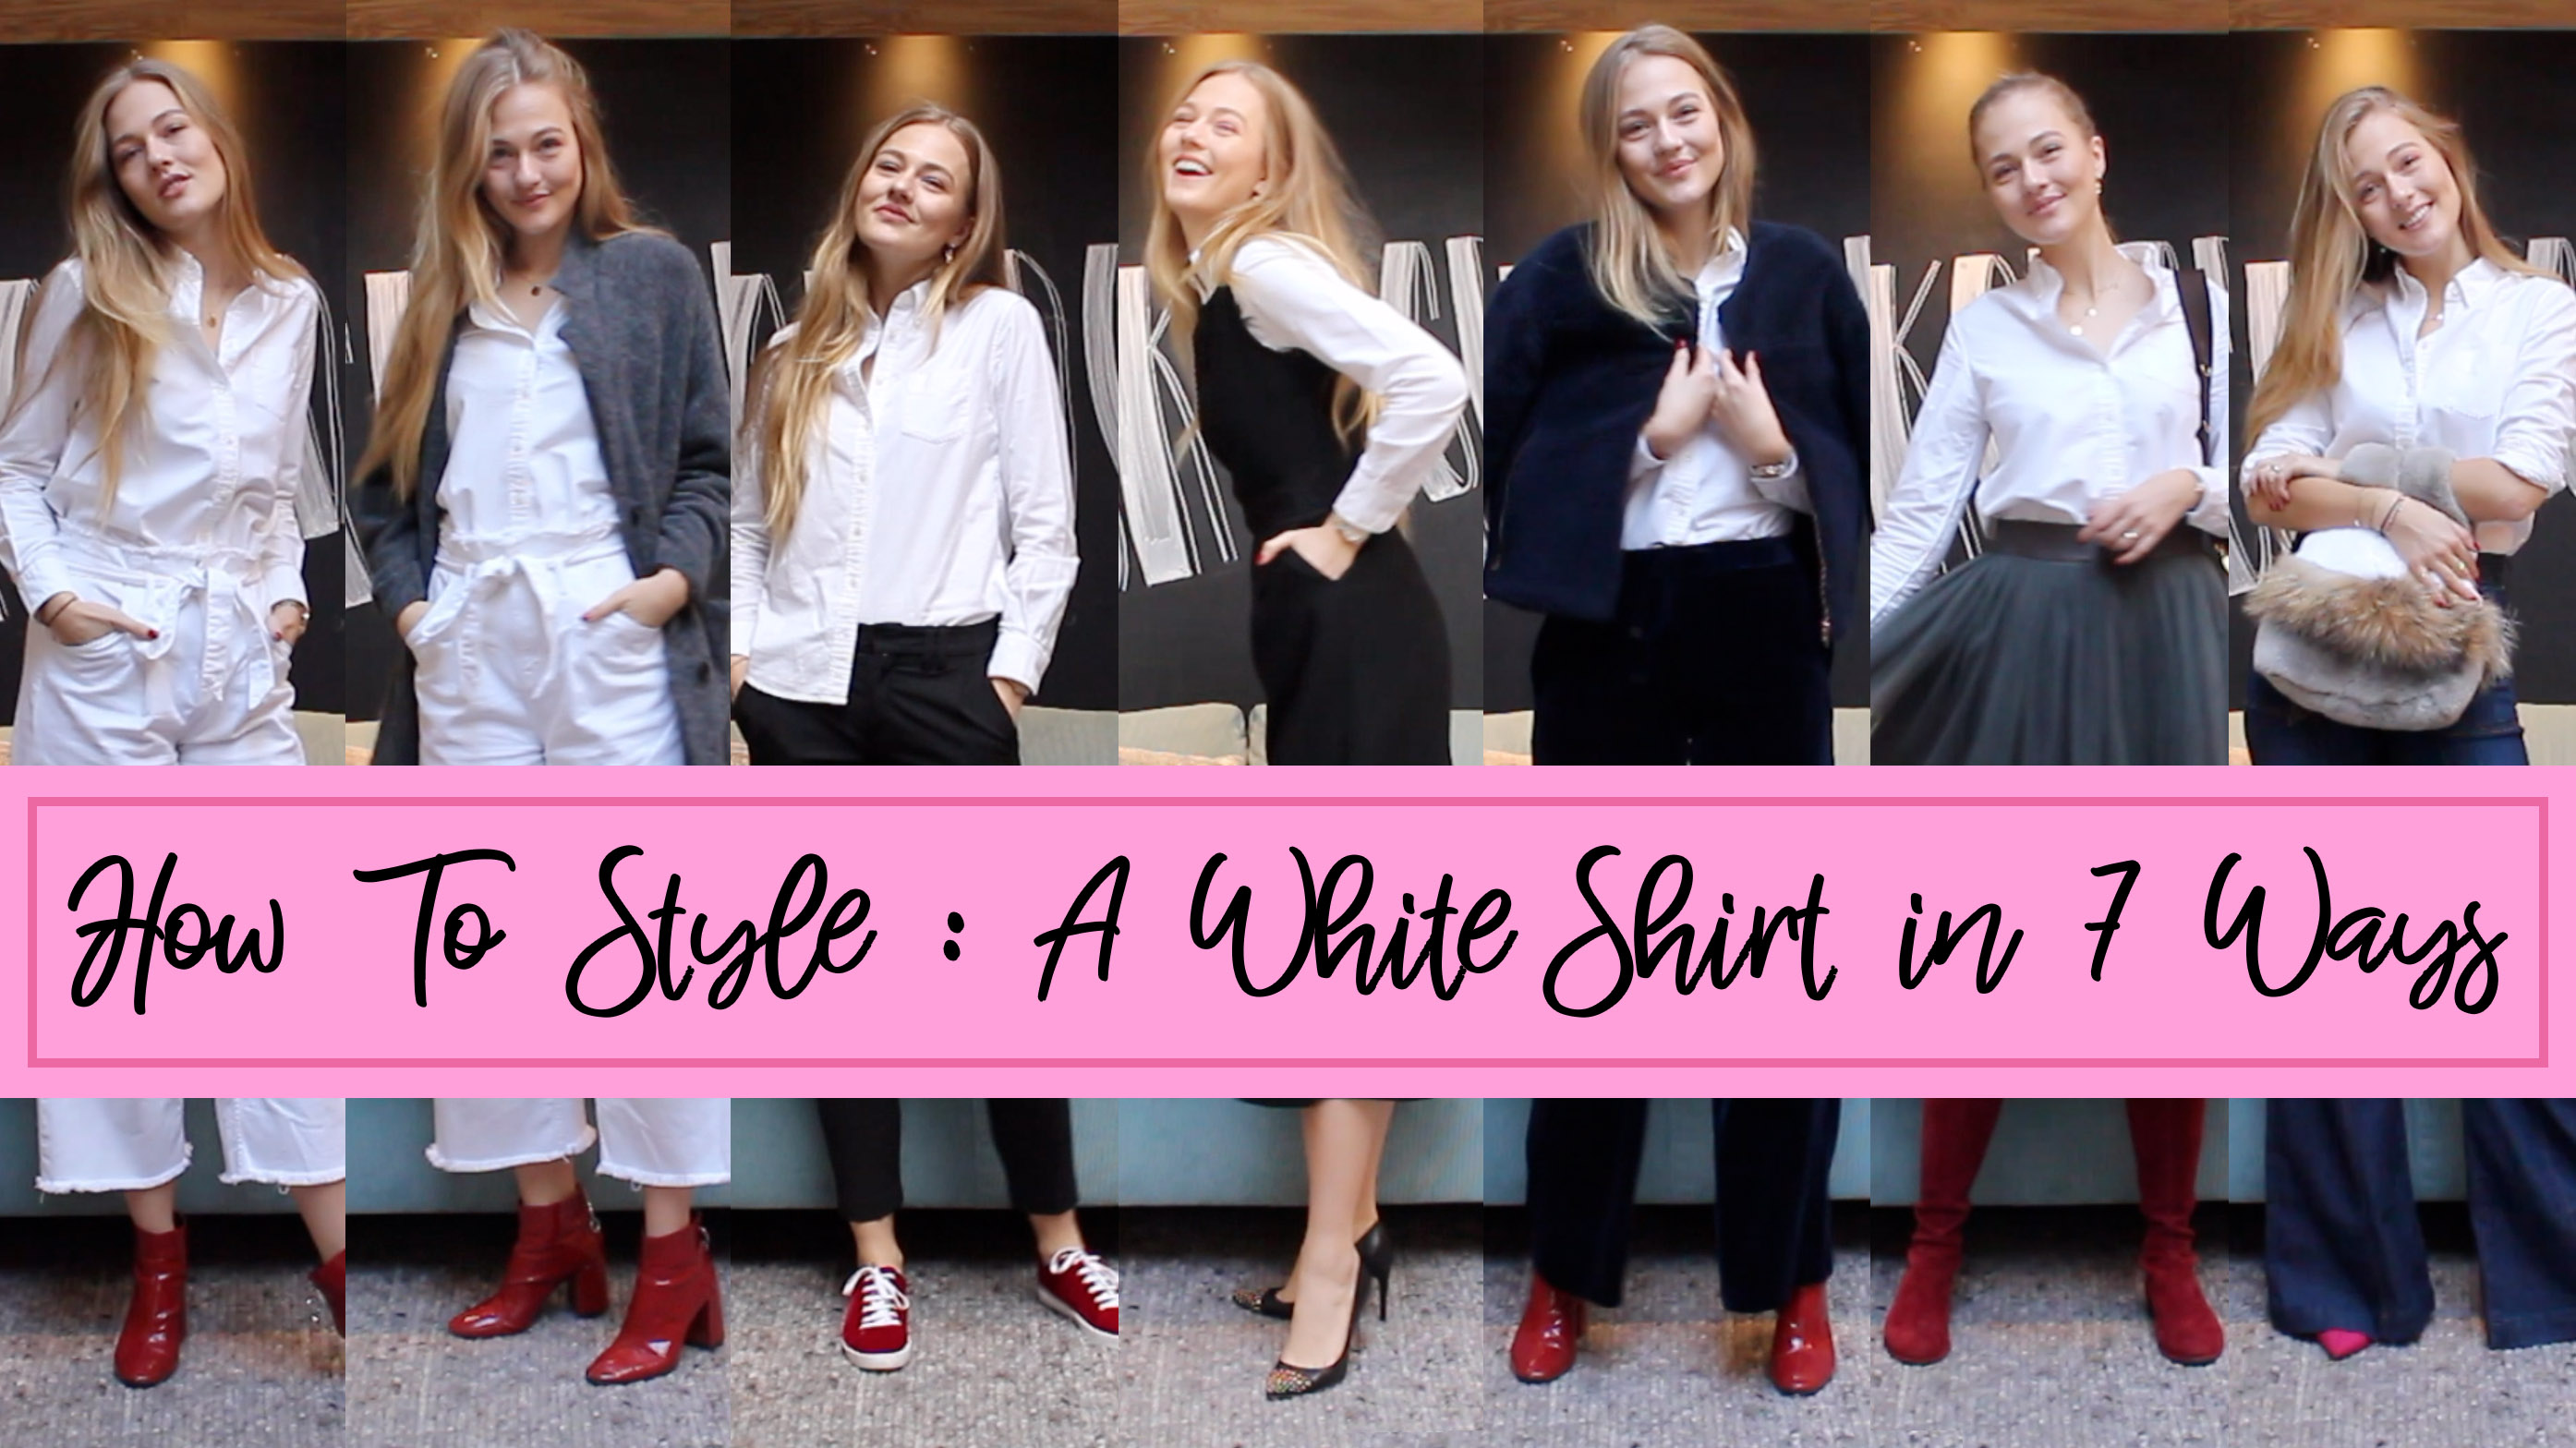 HOW TO STYLE : A WHITE SHIRT IN 7 WAYS